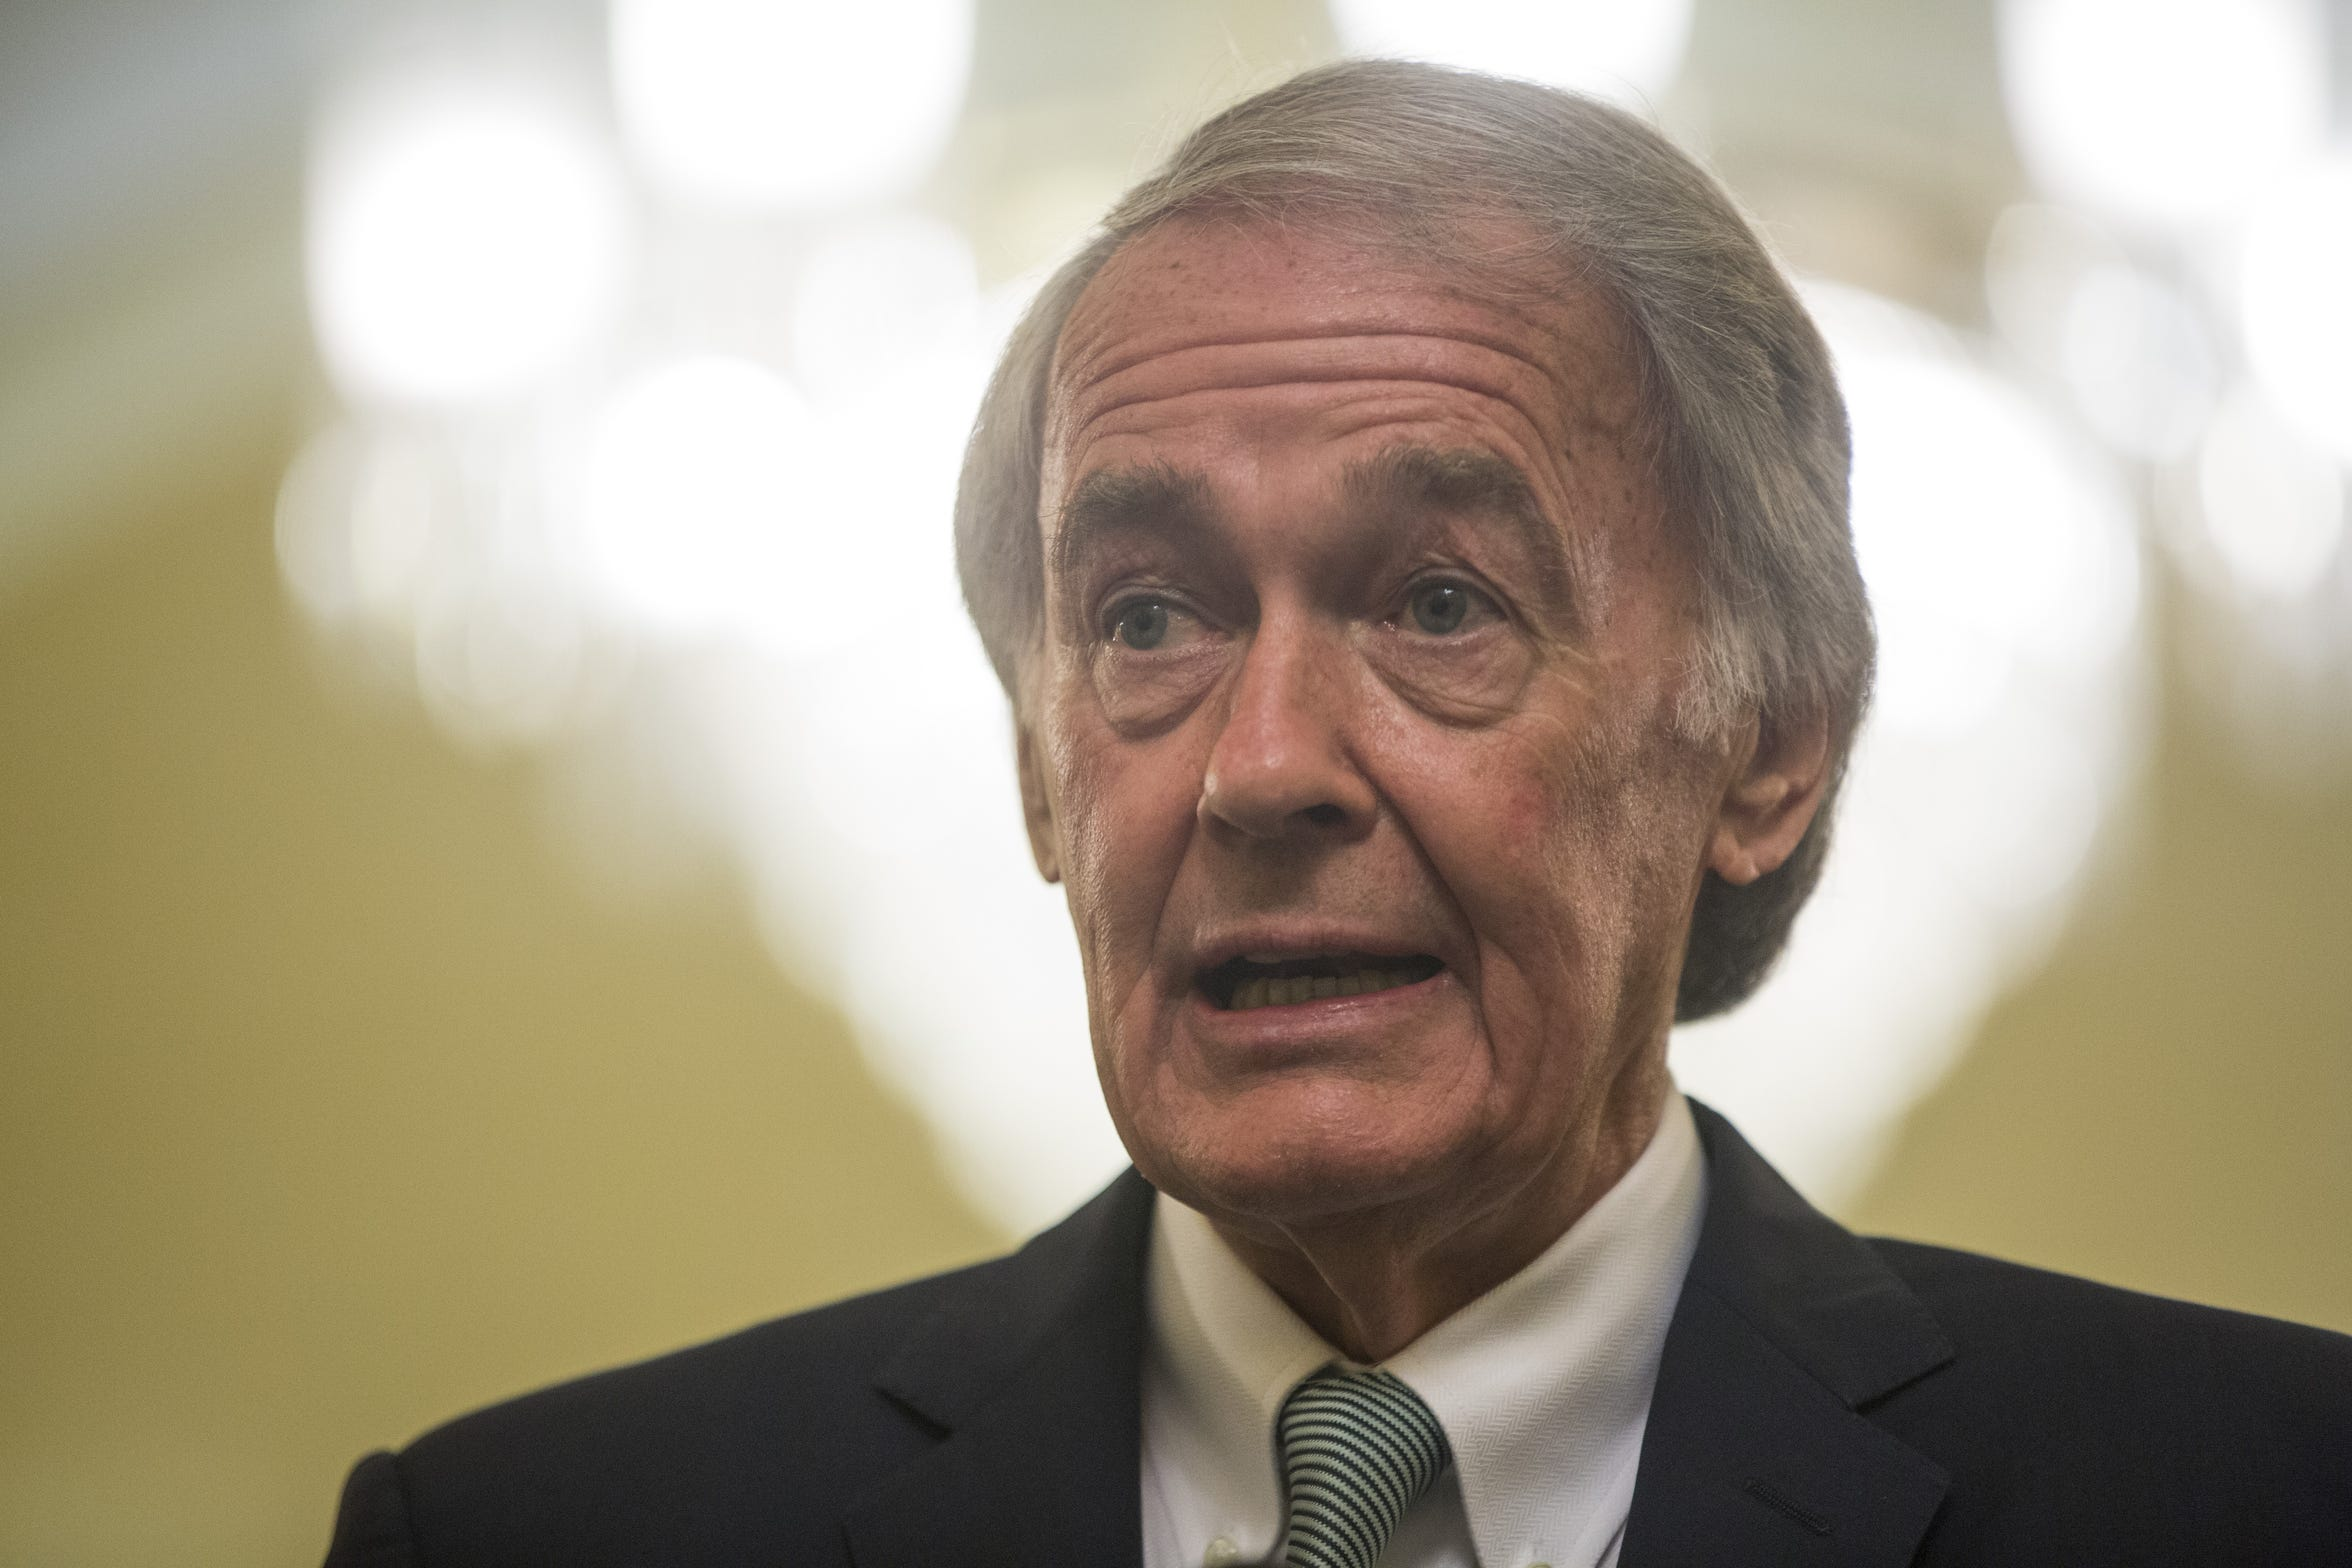 Sen. Ed Markey, D-Mass., speaks during a news conference on President Donald Trump's Clean Energy Plan replacement on Capitol Hill August 21, 2018.